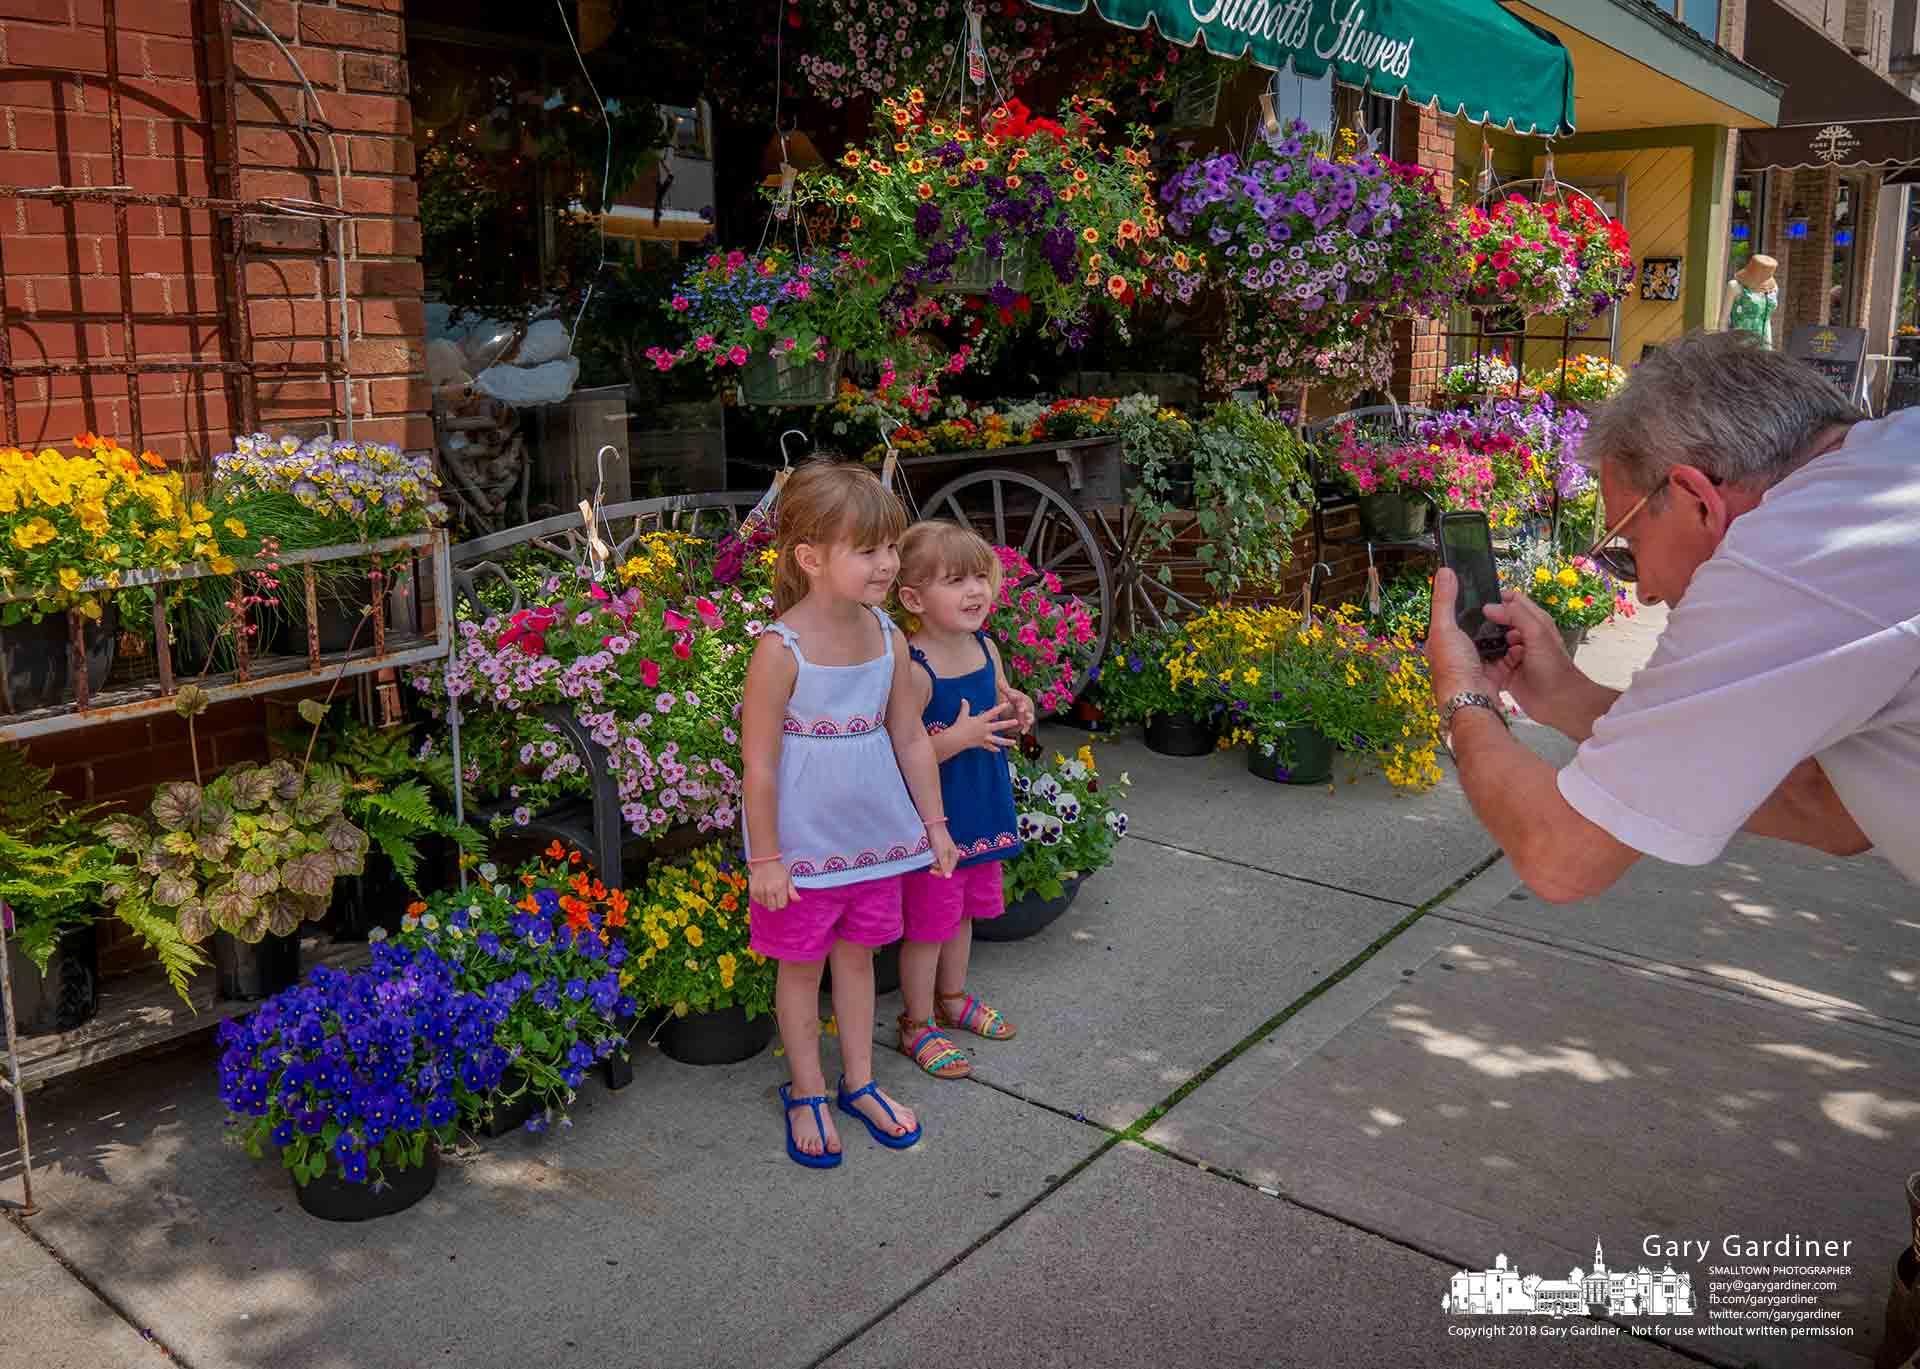 Grandfather uses his smartphone to record a Mother's Day greeting for the mother of two of his granddaughters using the flowers in front of Talbott's Flowers as the background. My Final Photo for May 11, 2018.